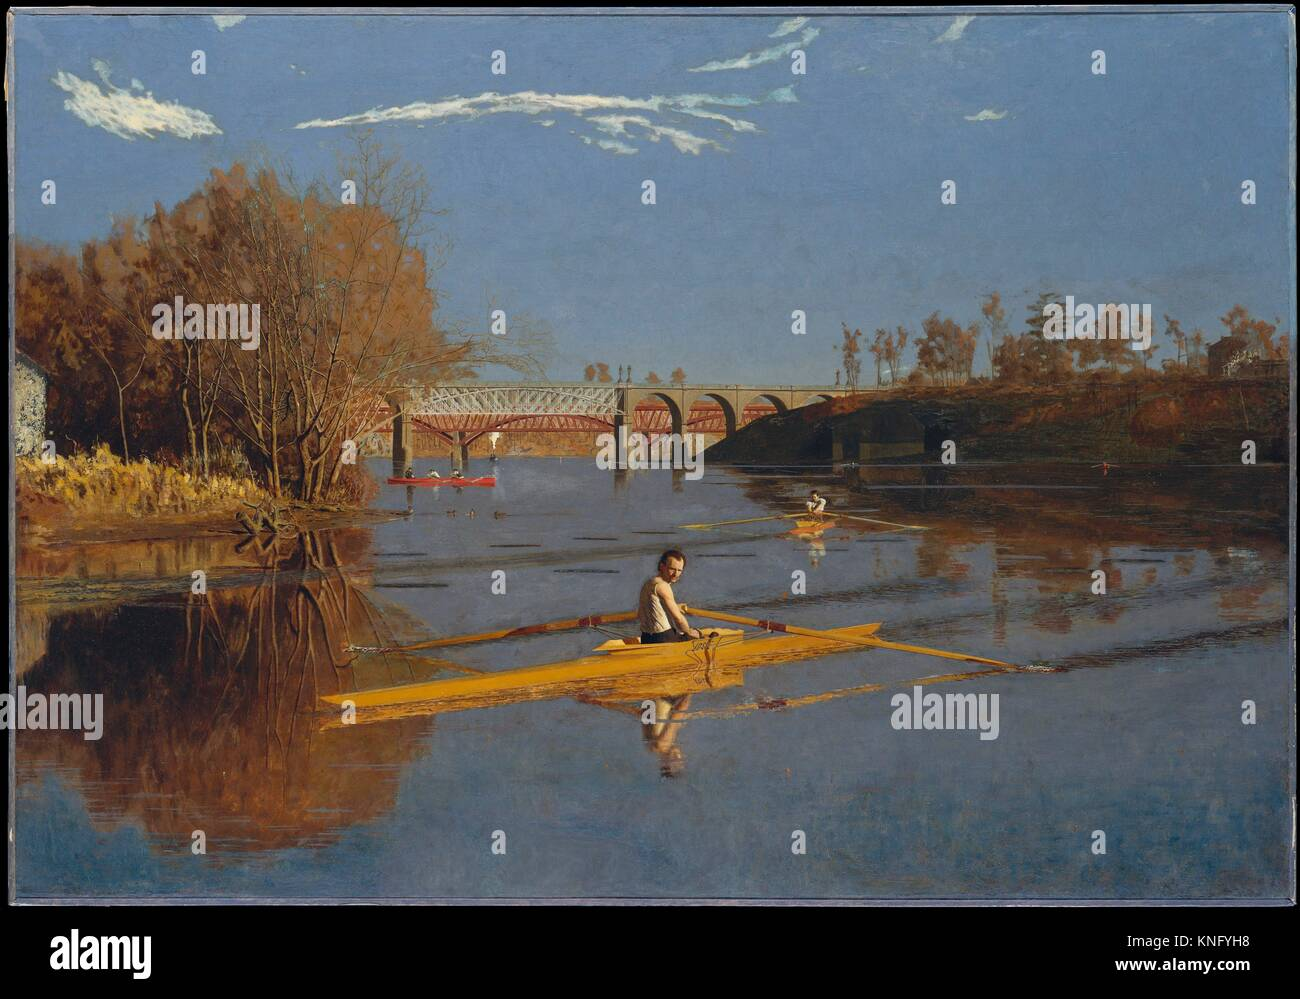 Max Schmitt In A Single Scull Paint Artist